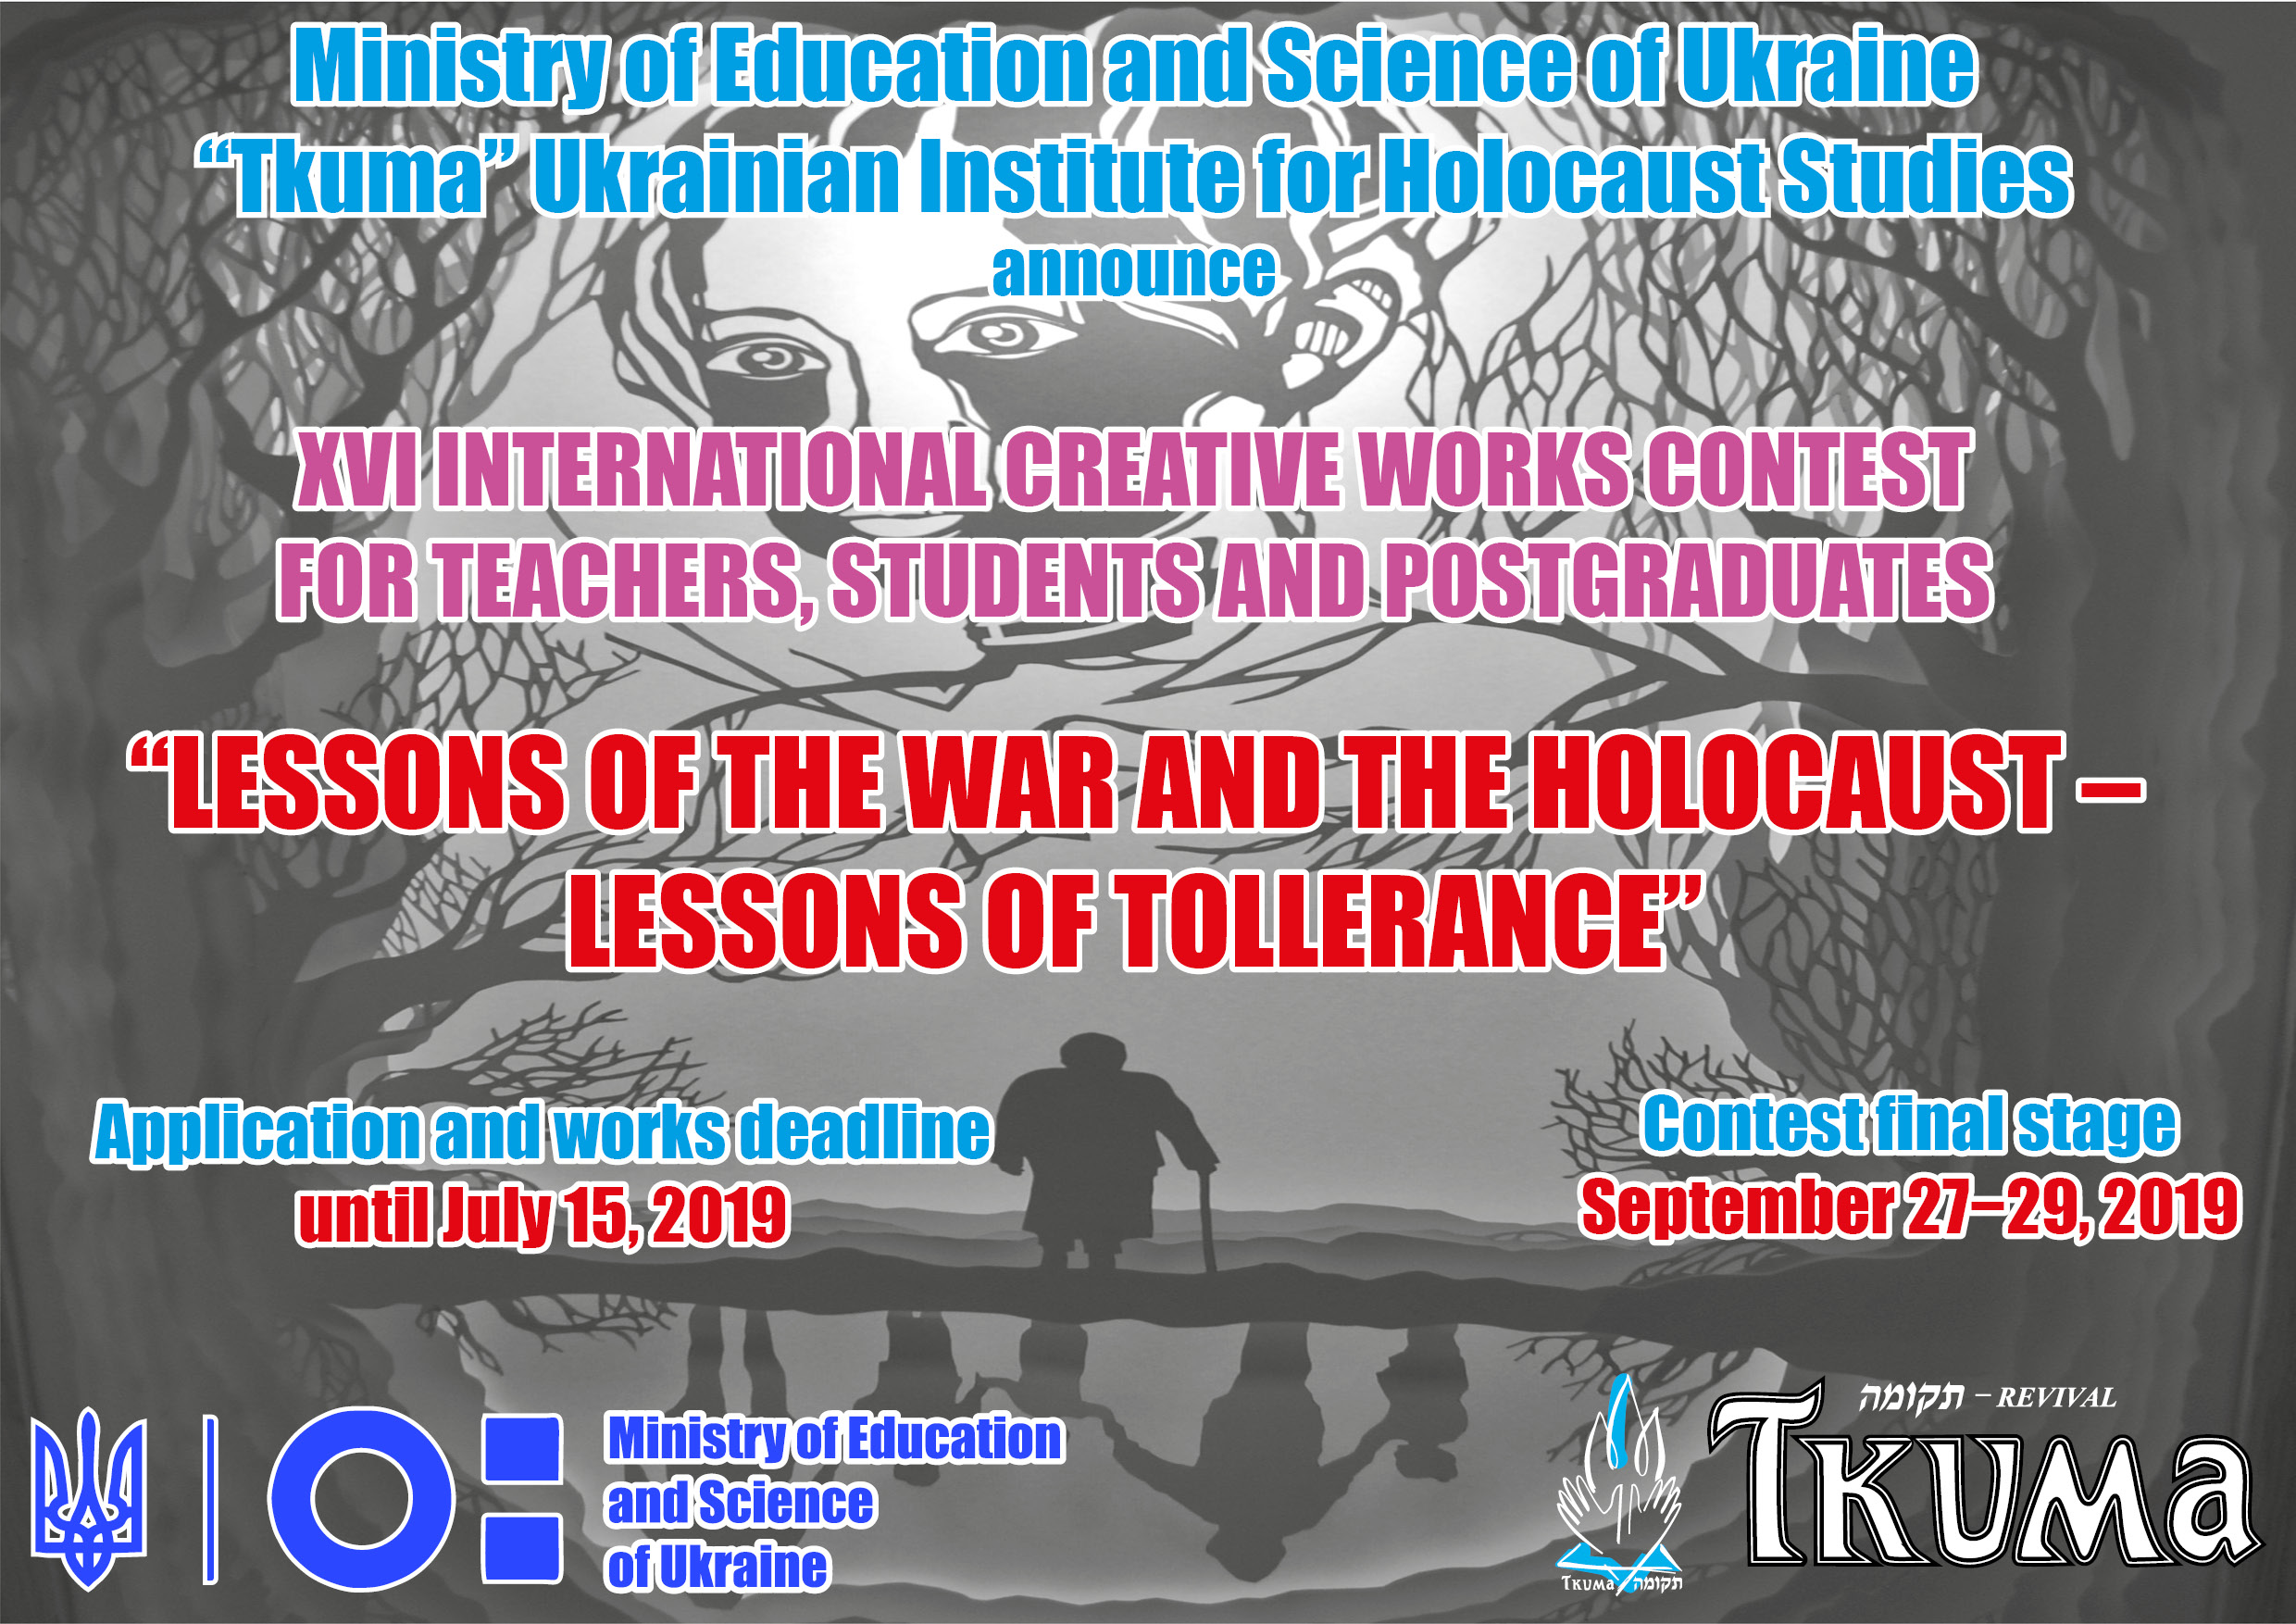 """Tkuma"" Institute announces XVI International Contest of creative works for school and university students, teachers, postgraduate «Lessons of the War and the Holocaust – Lessons of Tolerance»"